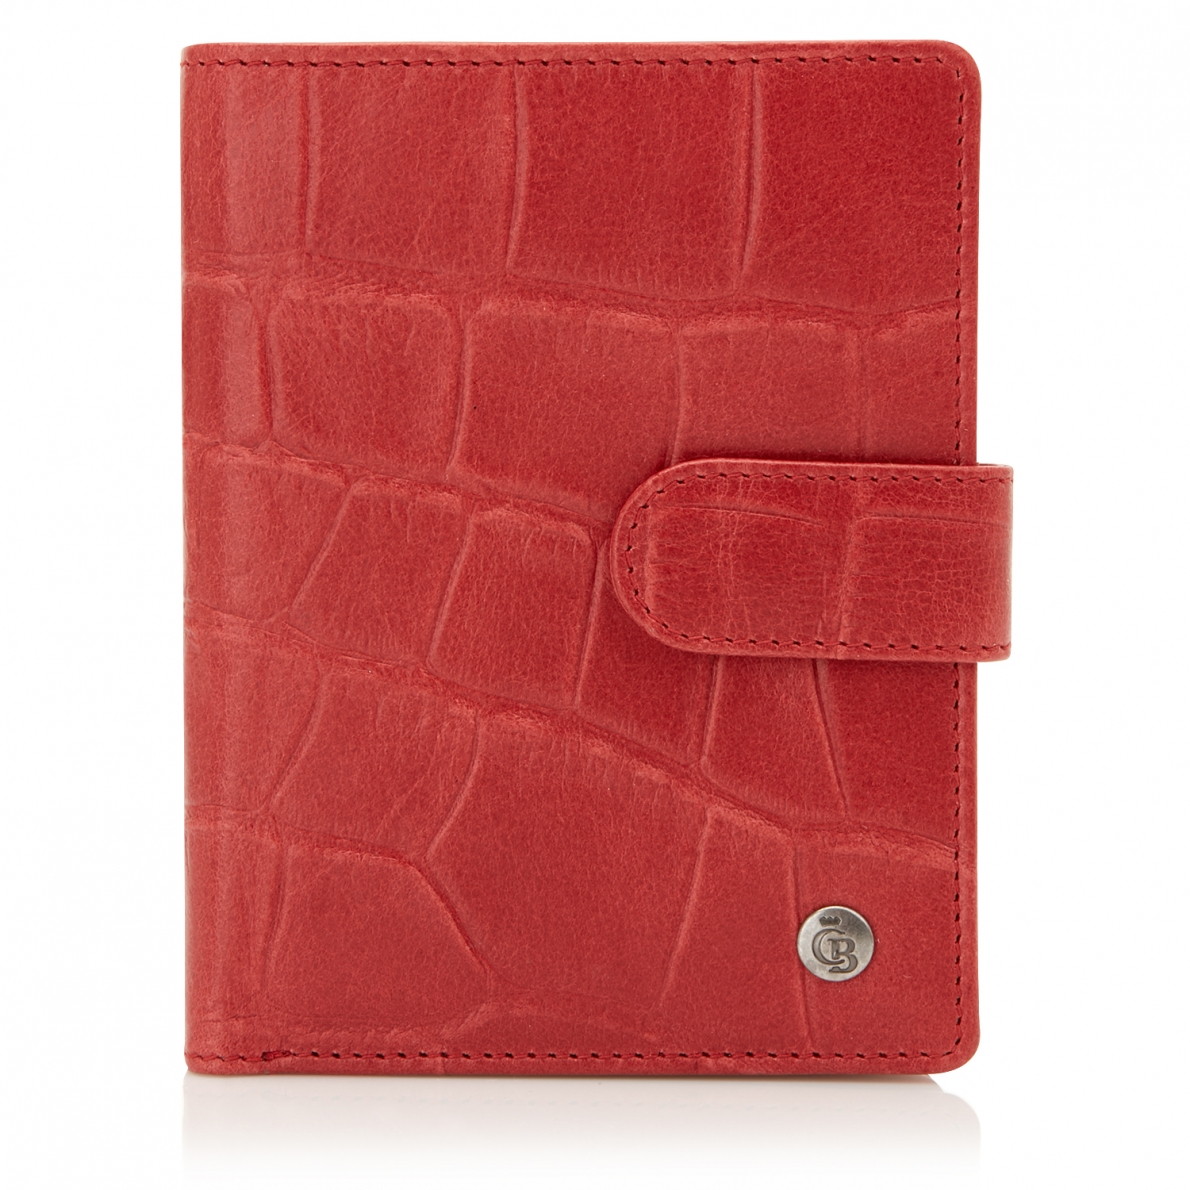 Castelijn & Beerens Cocco Ladies Wallet Red